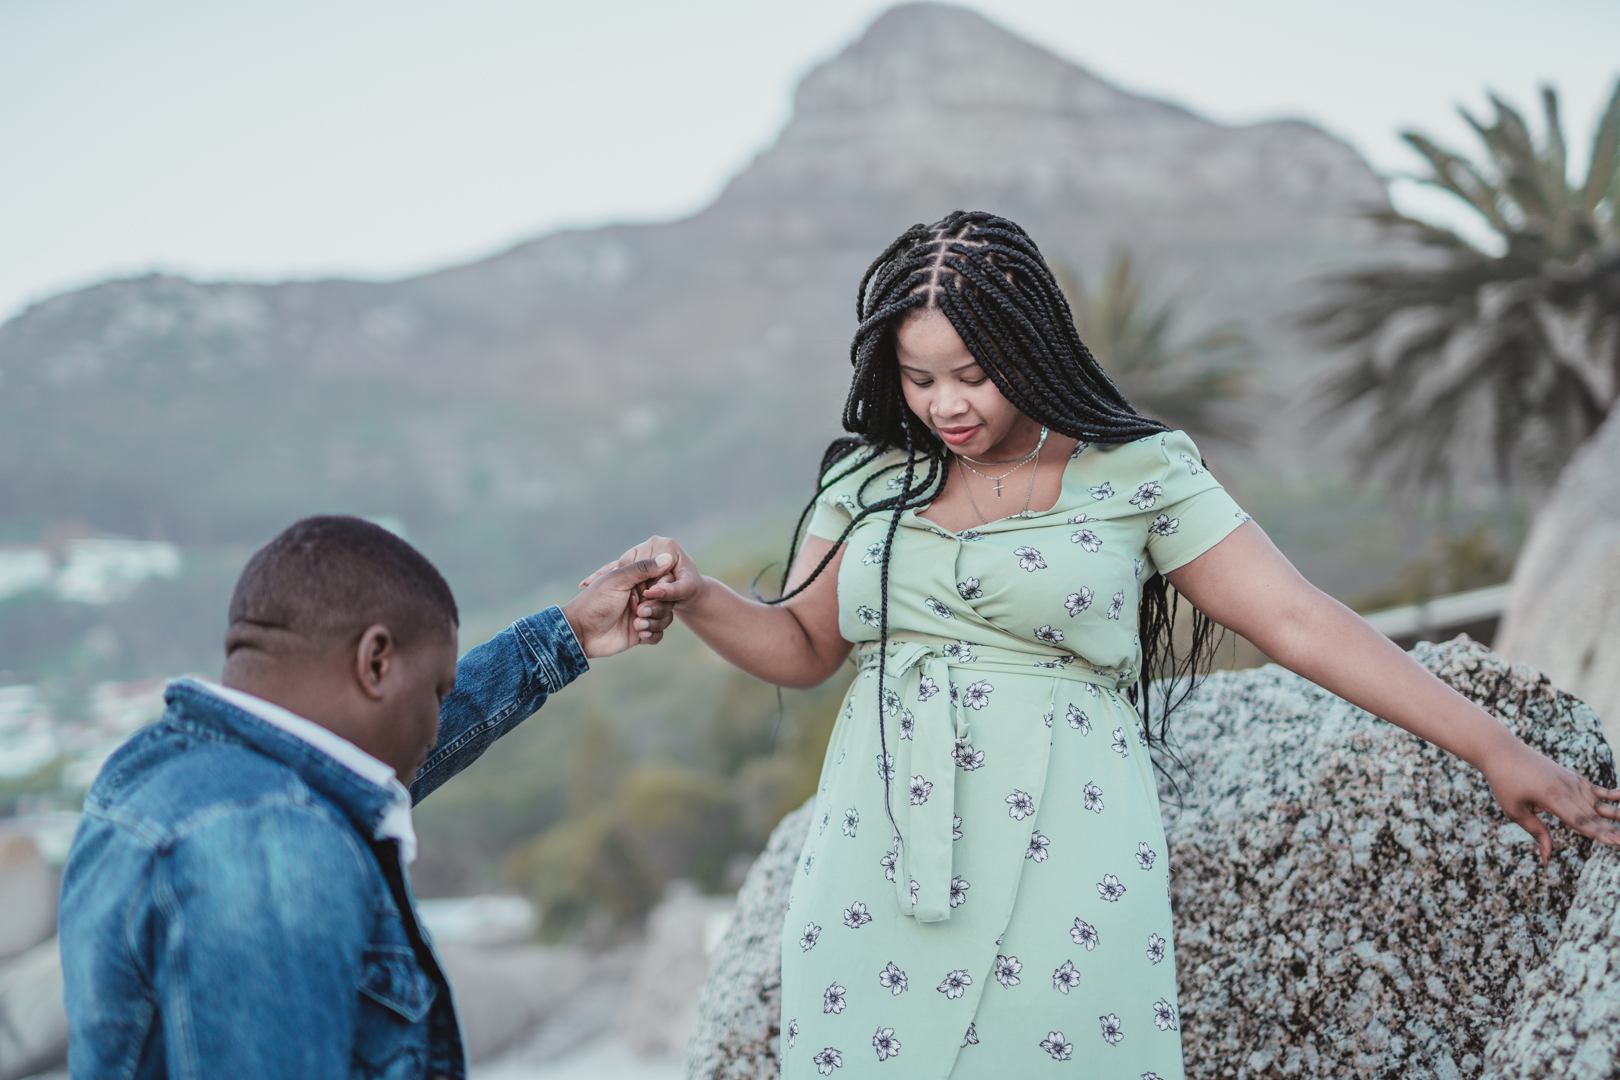 Couples Photos - Cape Town Beach session by Cape Image Co. _Small-file-21.jpg